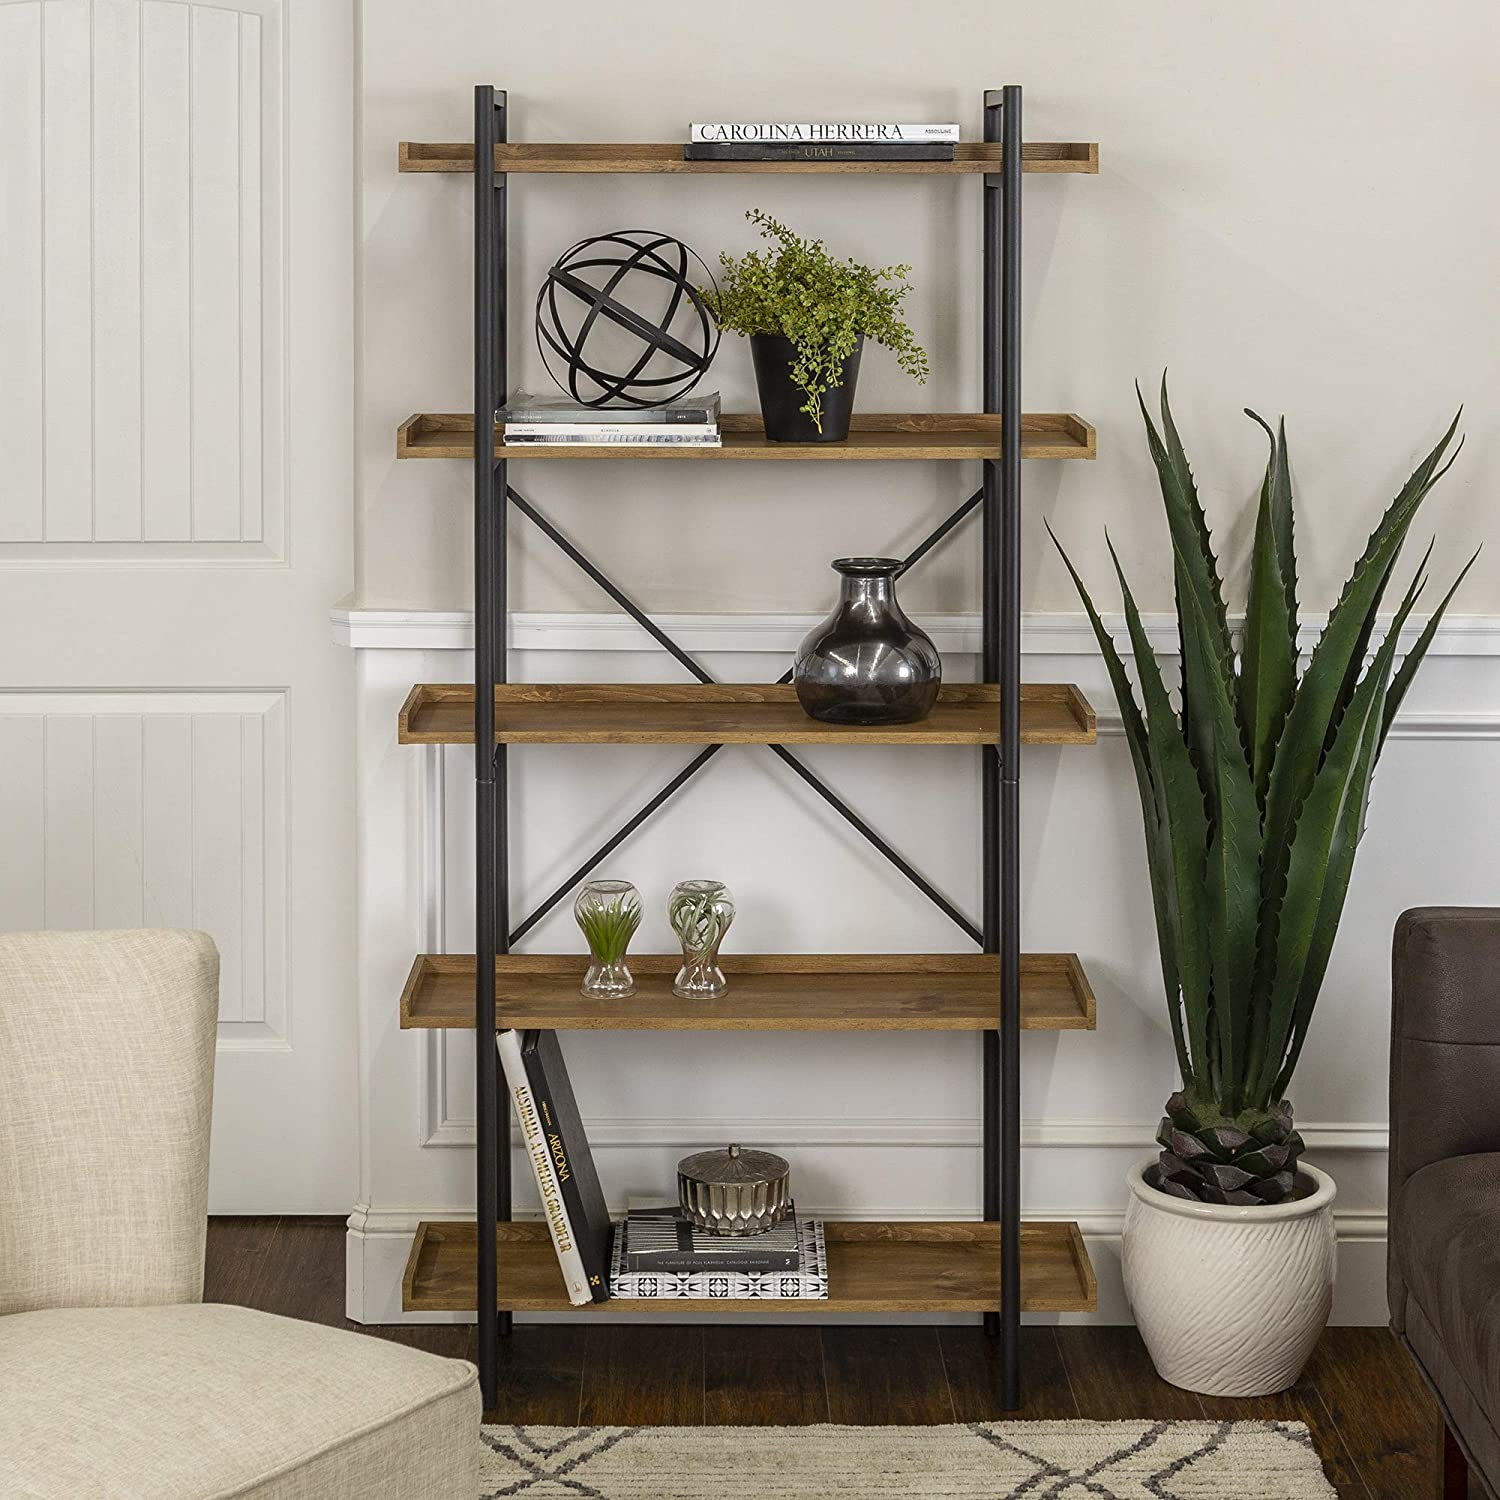 WE Furniture AZS68UPAG Urban Pipe Bookshelf, Barnwood